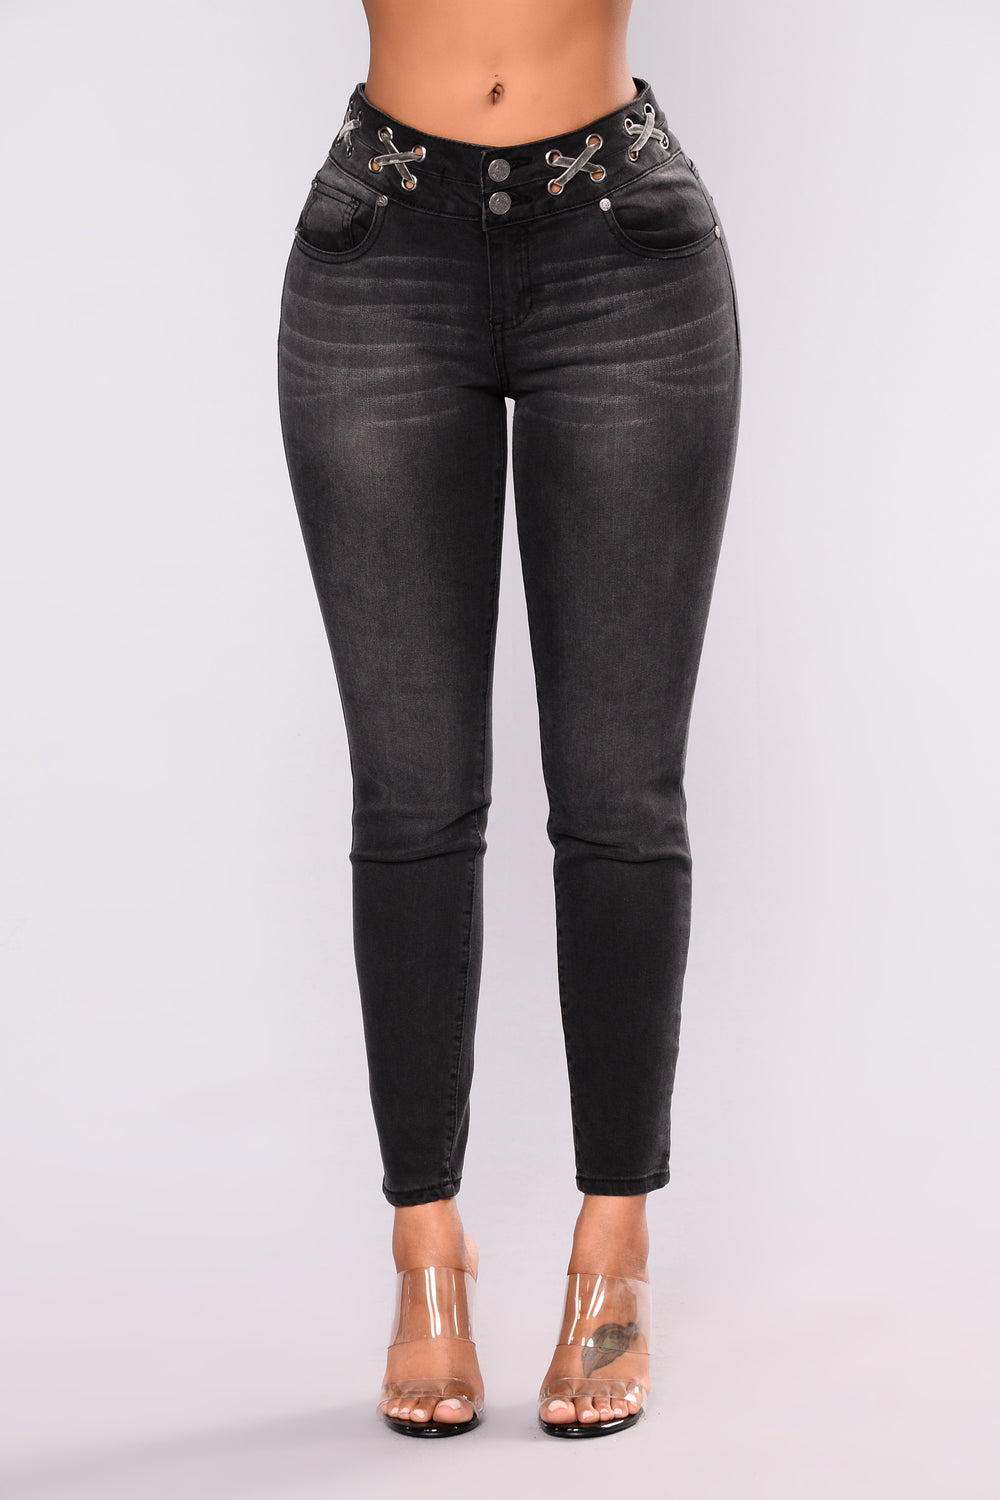 Lara Lace Up Skinny Jeans - Black